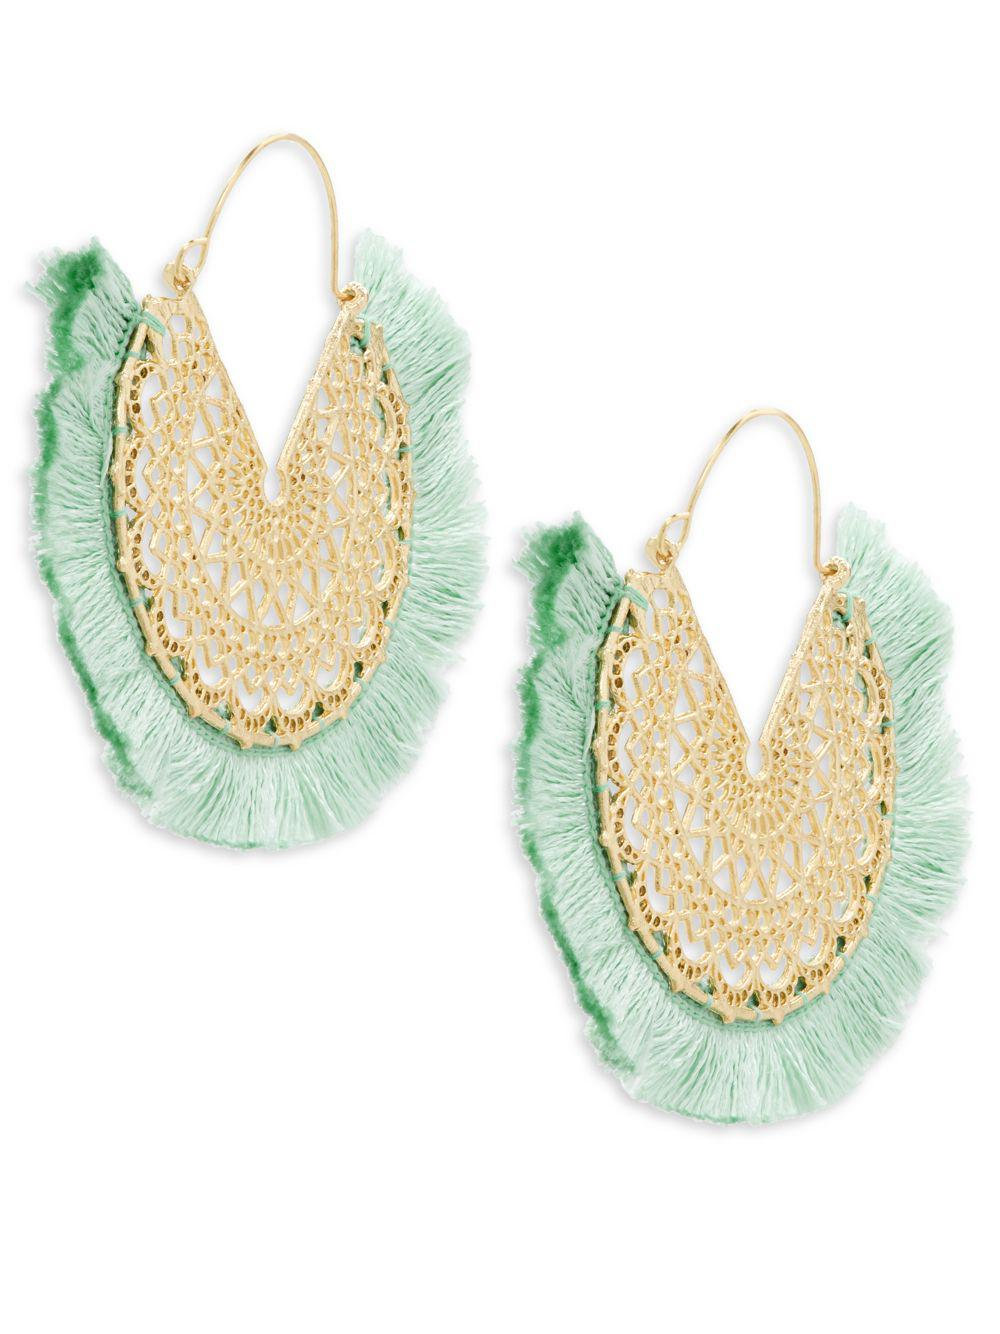 Panacea Filigree Fringe Drop Earrings 1RIVv9cdu